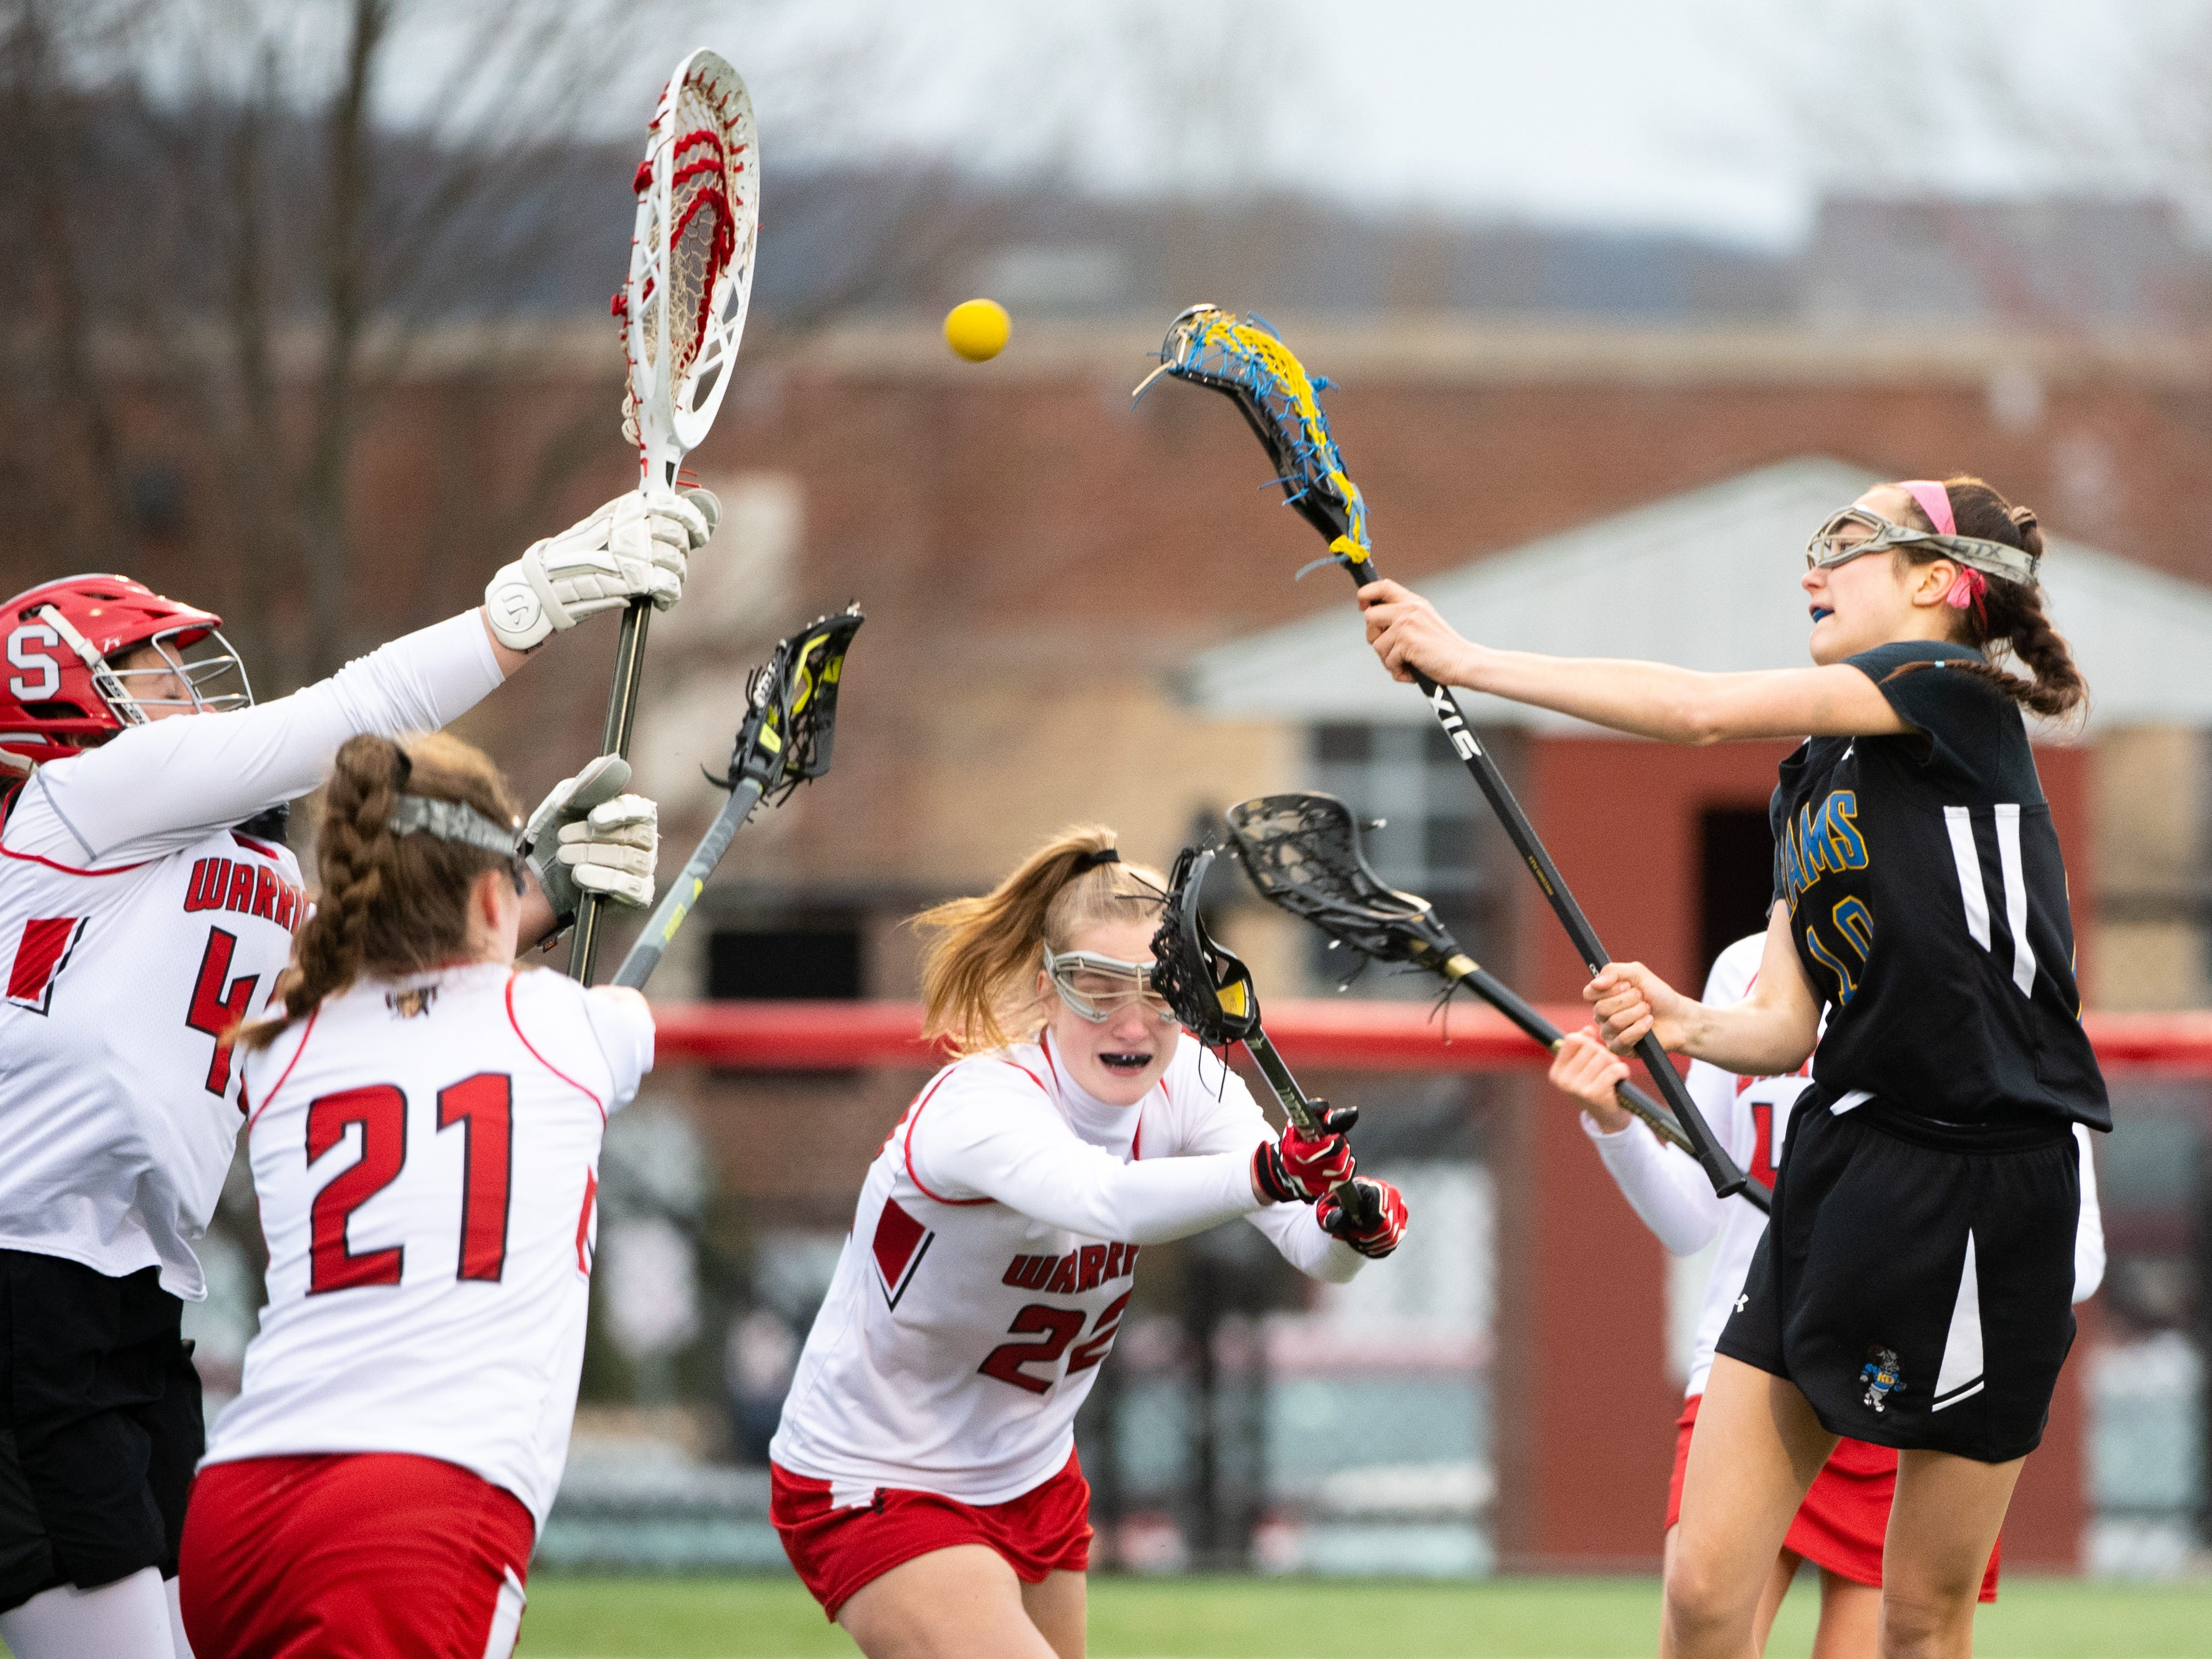 Amelie Gamache (10) takes the shot during the girls' lacrosse game between Susquehannock and Kennard-Dale, April 2, 2019 at Susquehannock High School. The Rams defeated the Warriors 17 to 2.